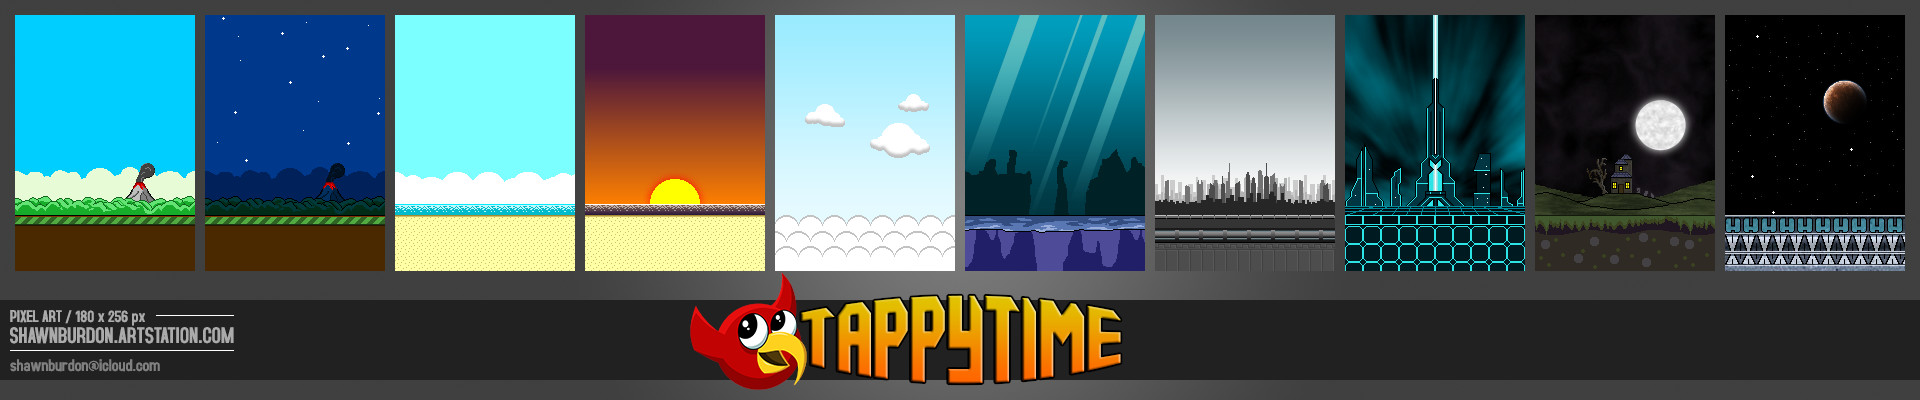 Shawn burdon shawn burdon tappytime backgrounds